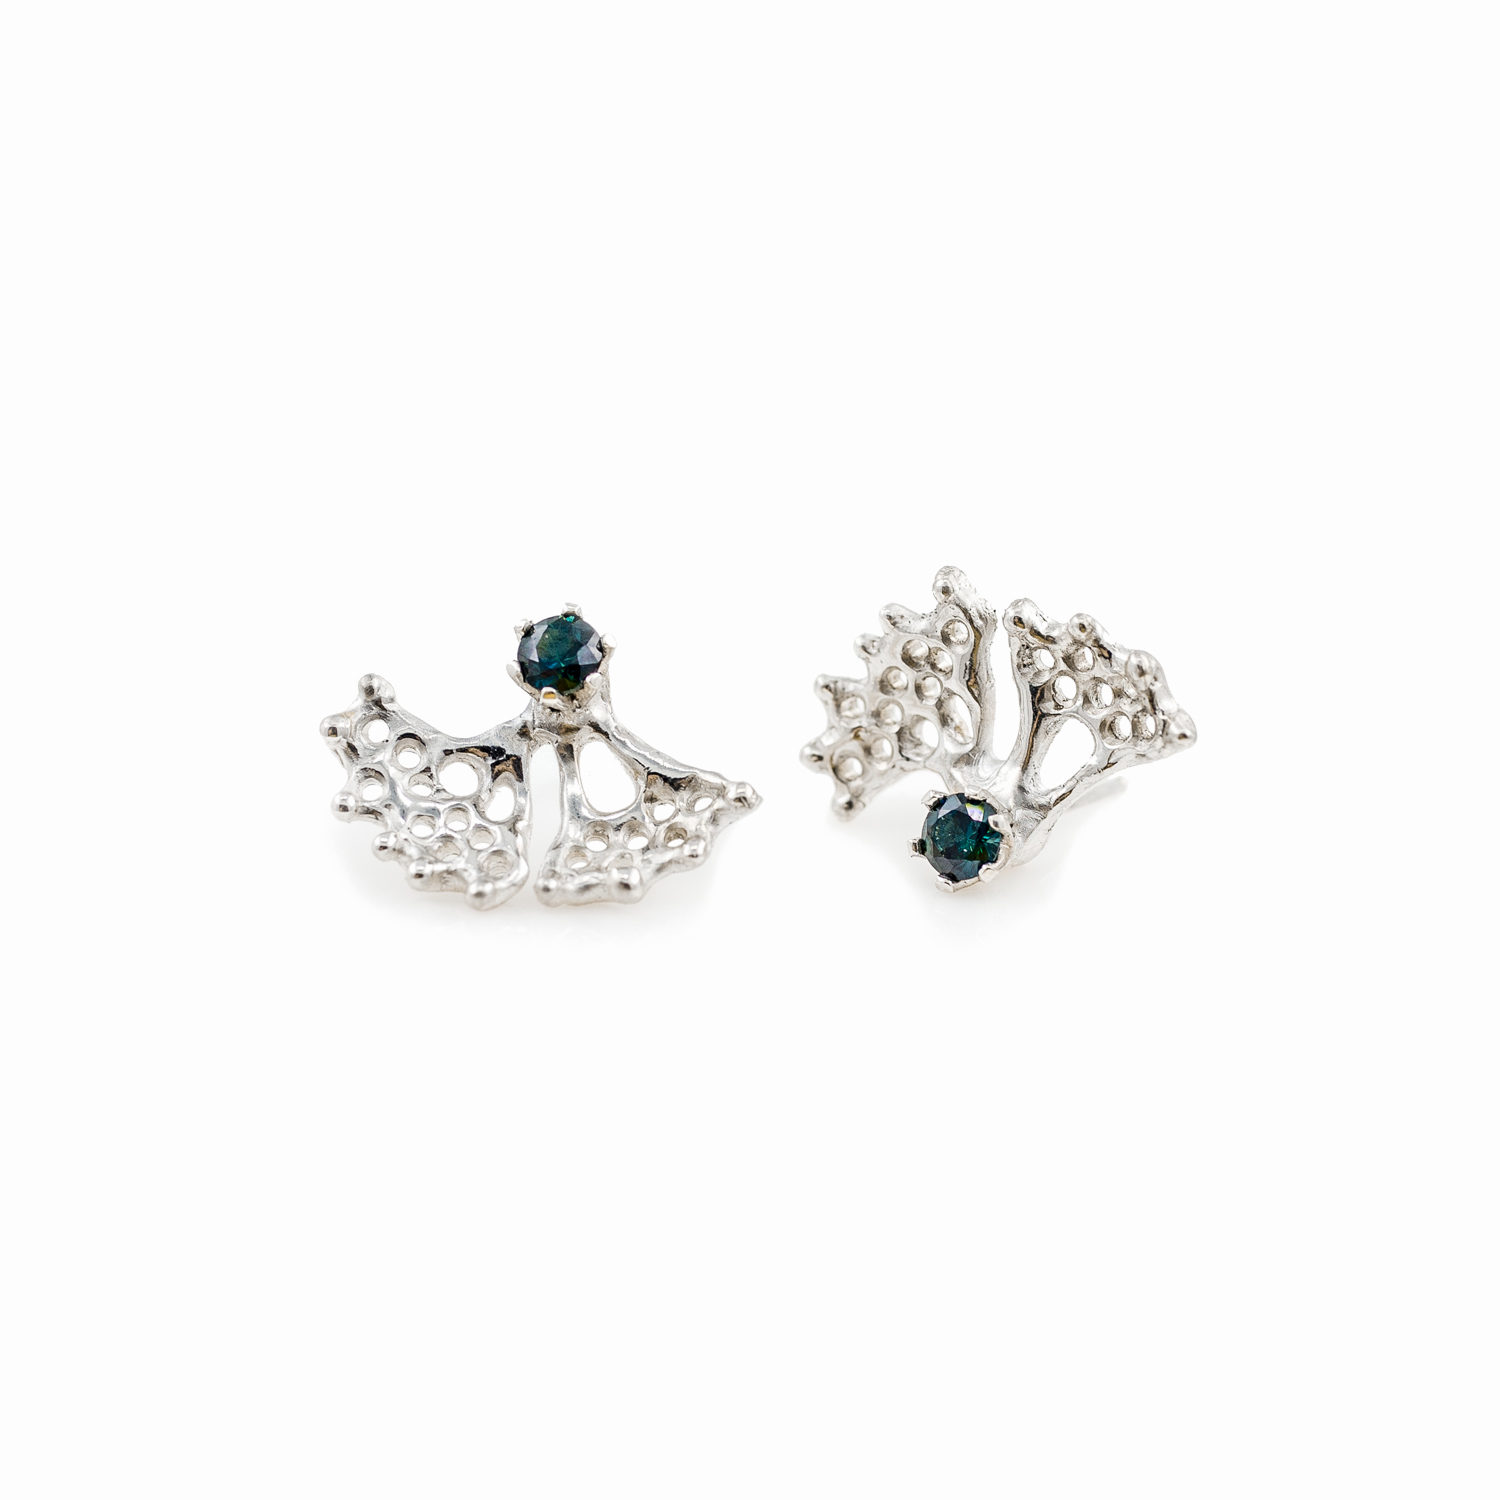 Silver fanned earrings with Australian parti sapphires